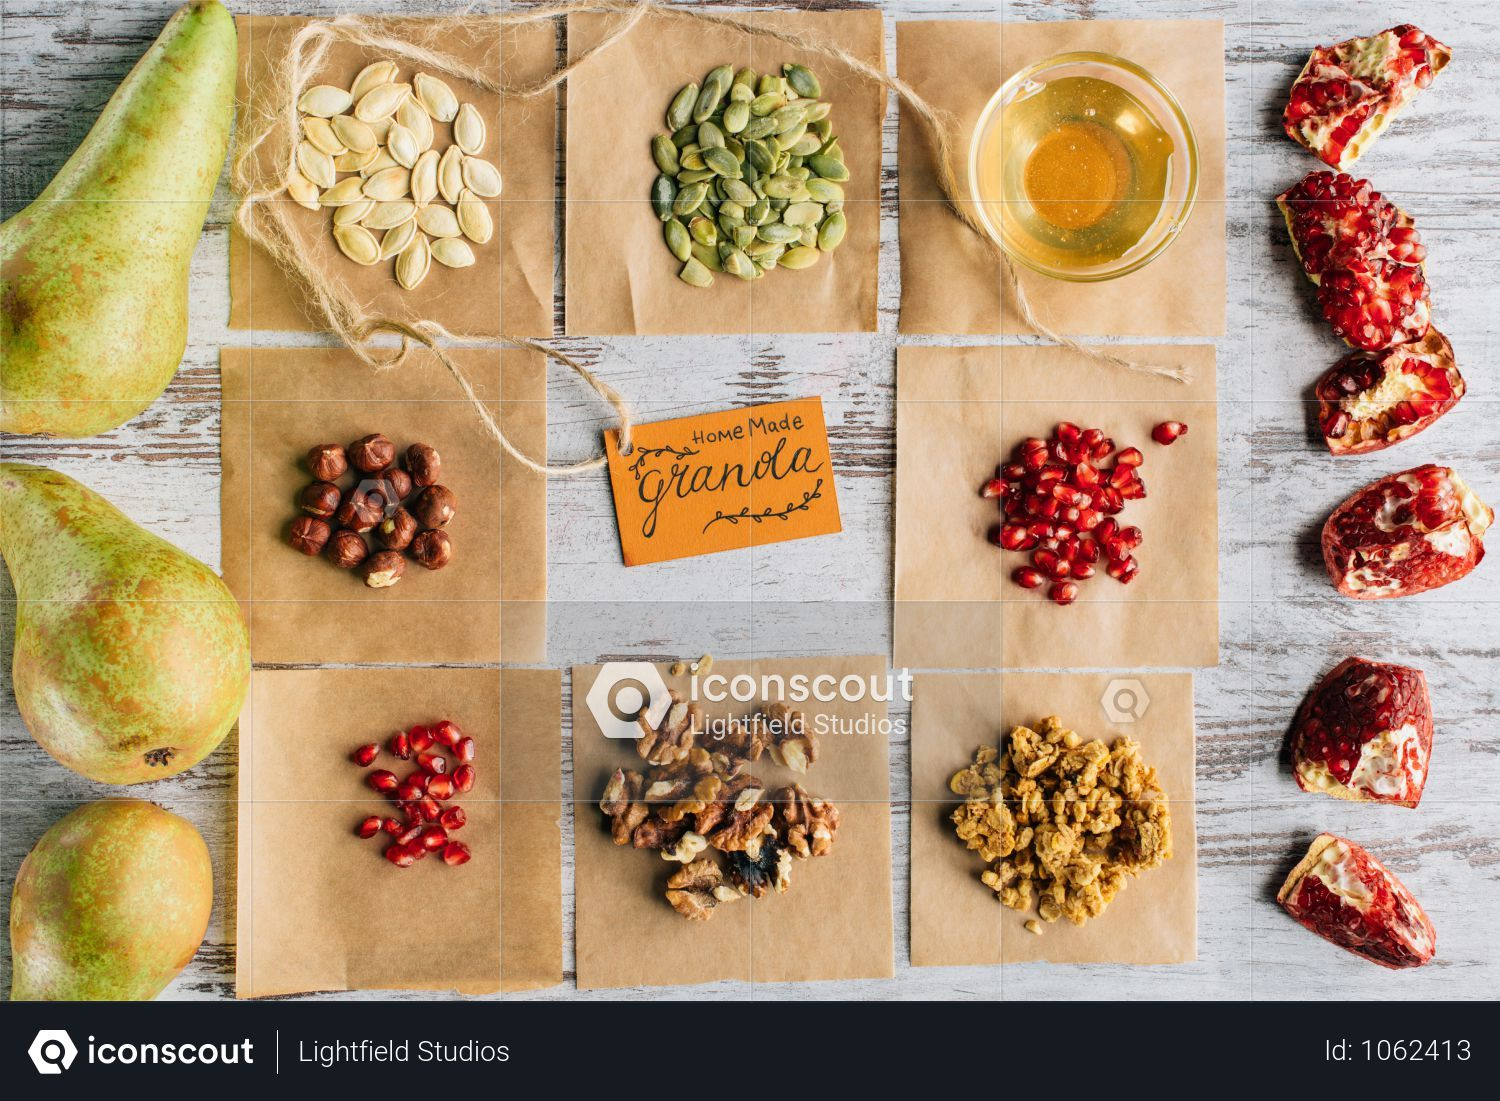 Premium Top View Of Granola Ingredients And Tag On Wooden Table Photo Download In Png Jpg Format Granola Ingredients Wooden Tables Granola